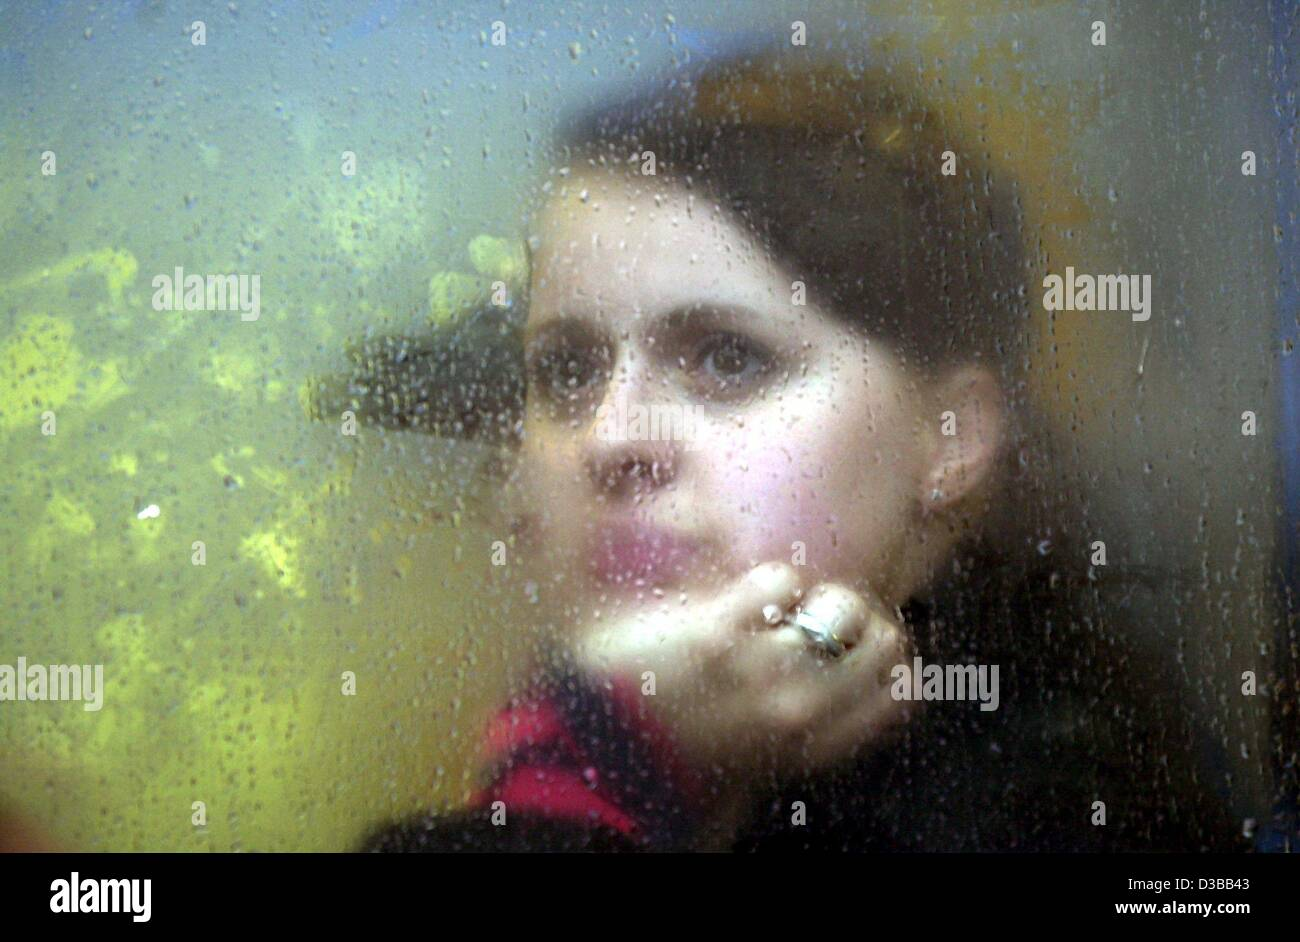 (dpa) - A young lady looks dreamily through a steamed up window pane in a streetcar in Kassel, Germany, 5 October - Stock Image